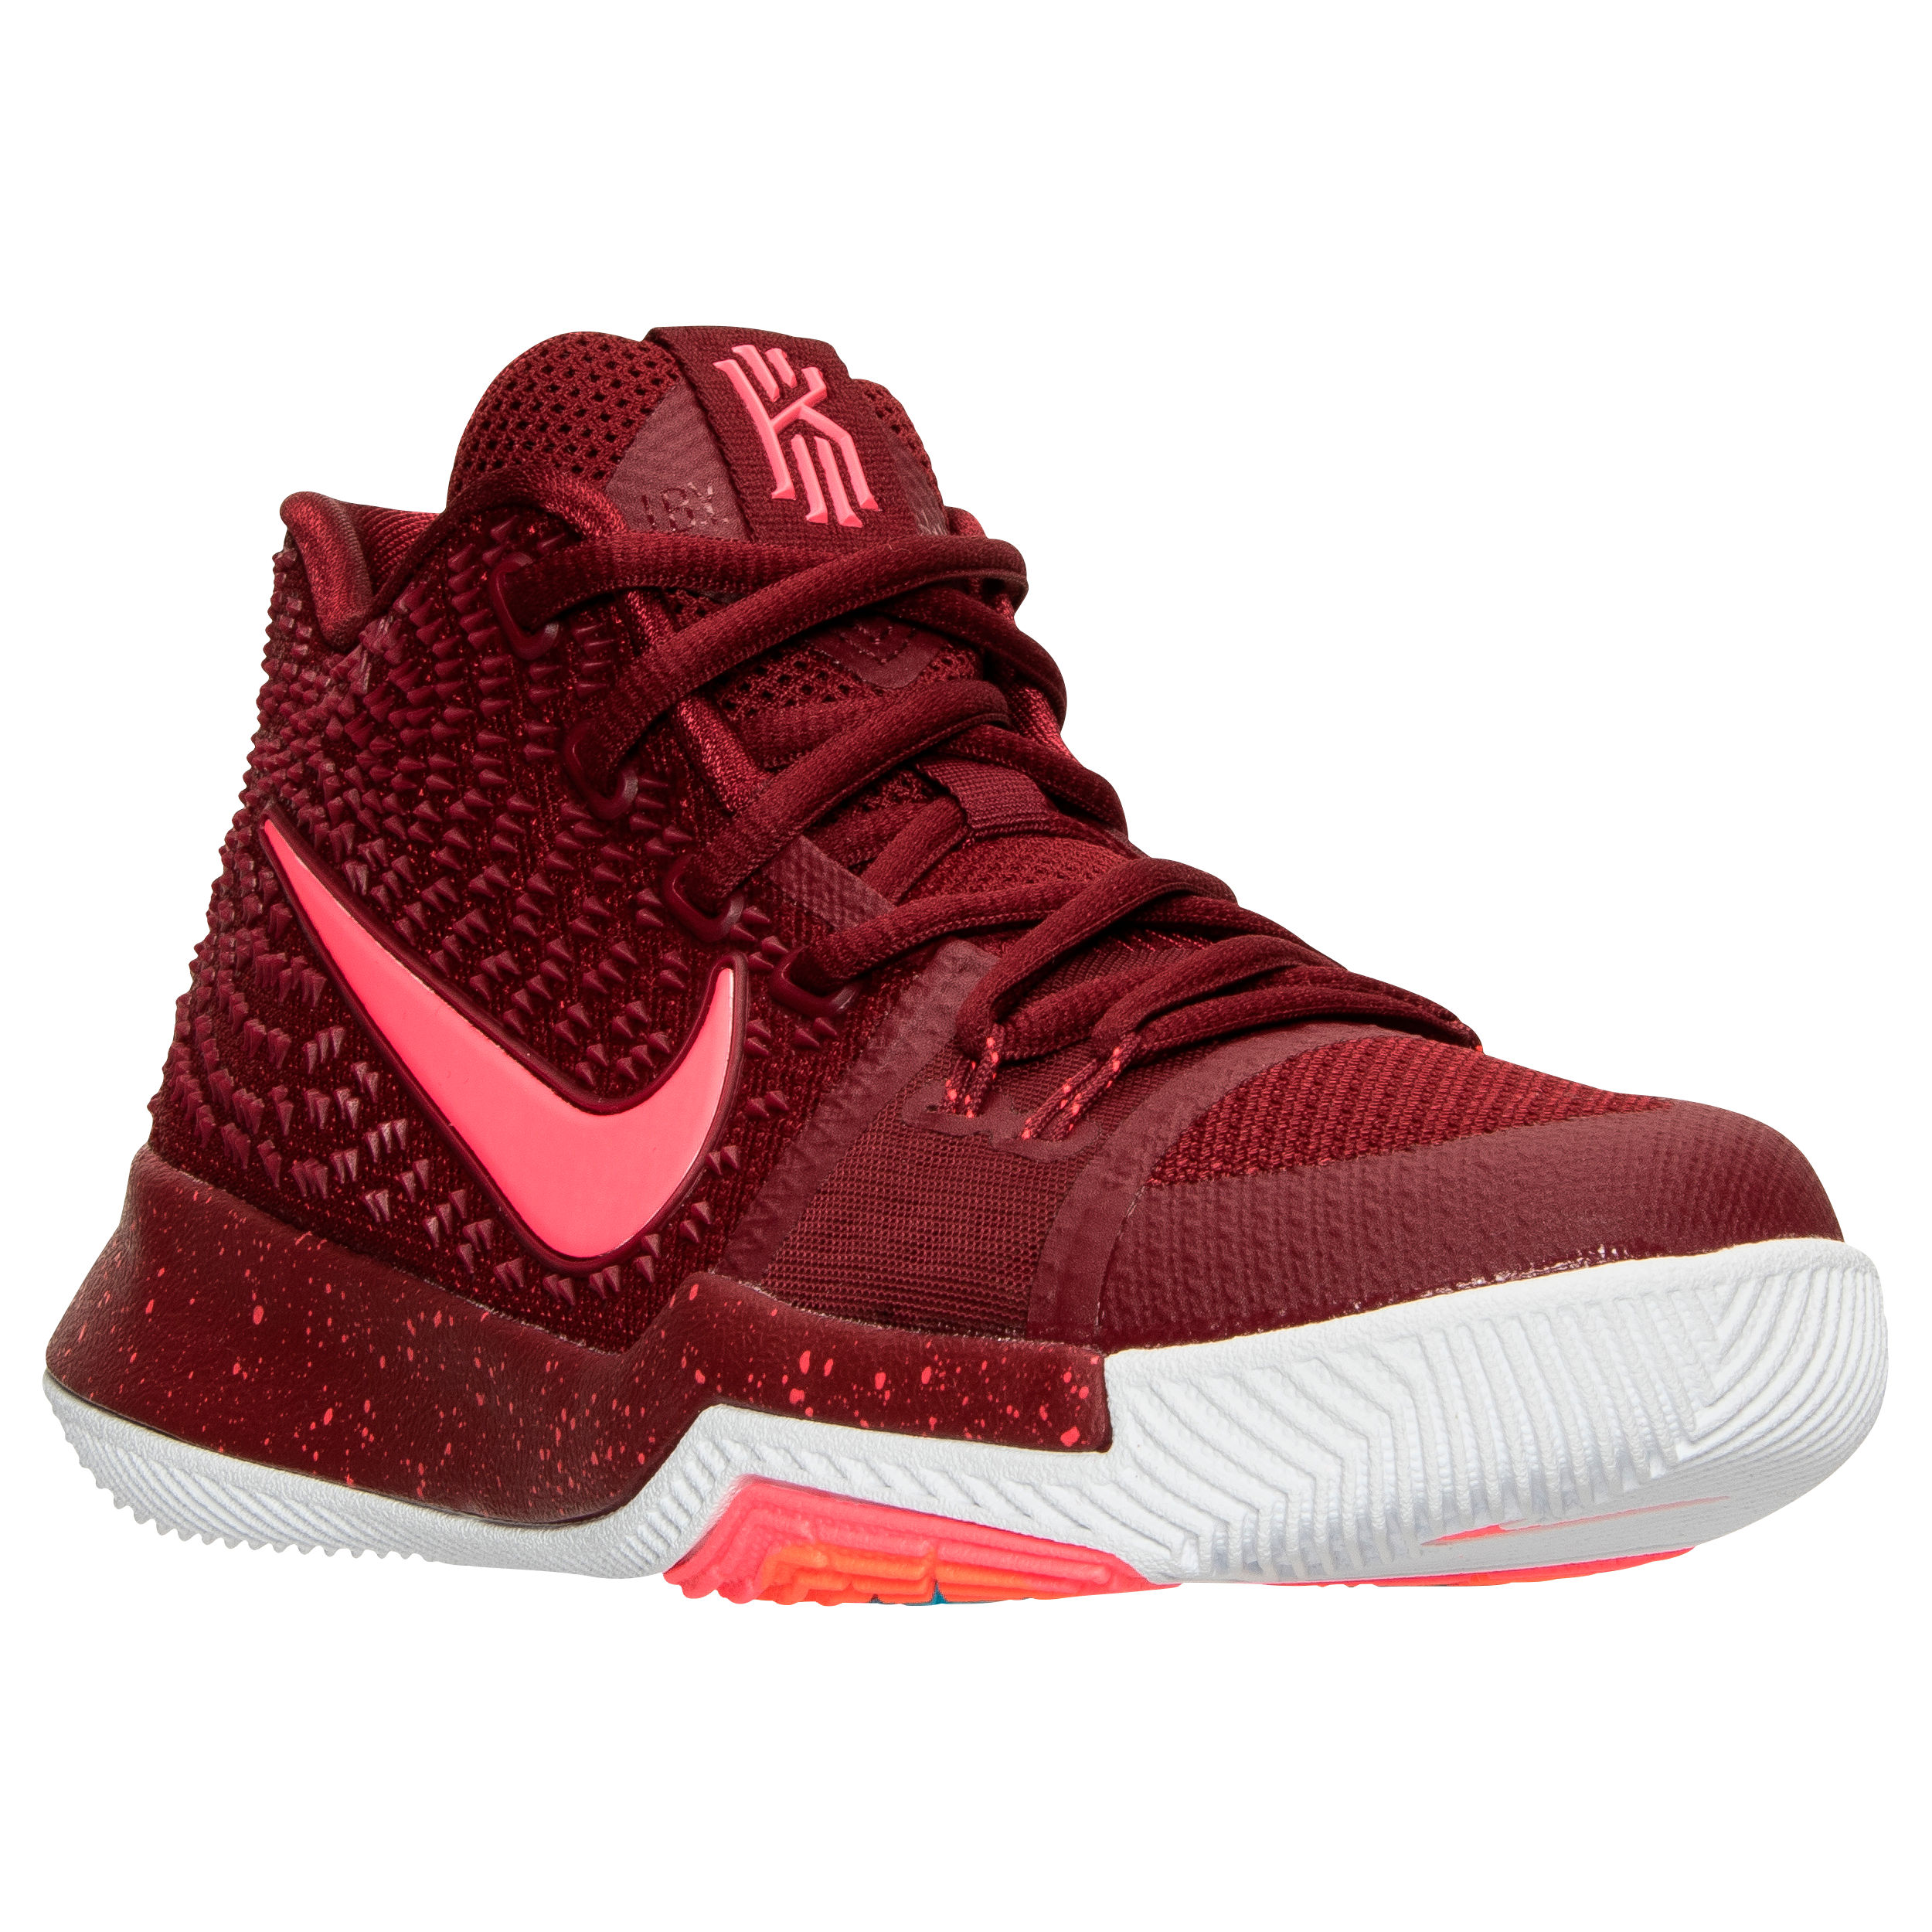 reputable site bc0f5 f8444 ... A Look at the Upcoming Team Red Nike Kyrie 3 GS - WearTesters ...